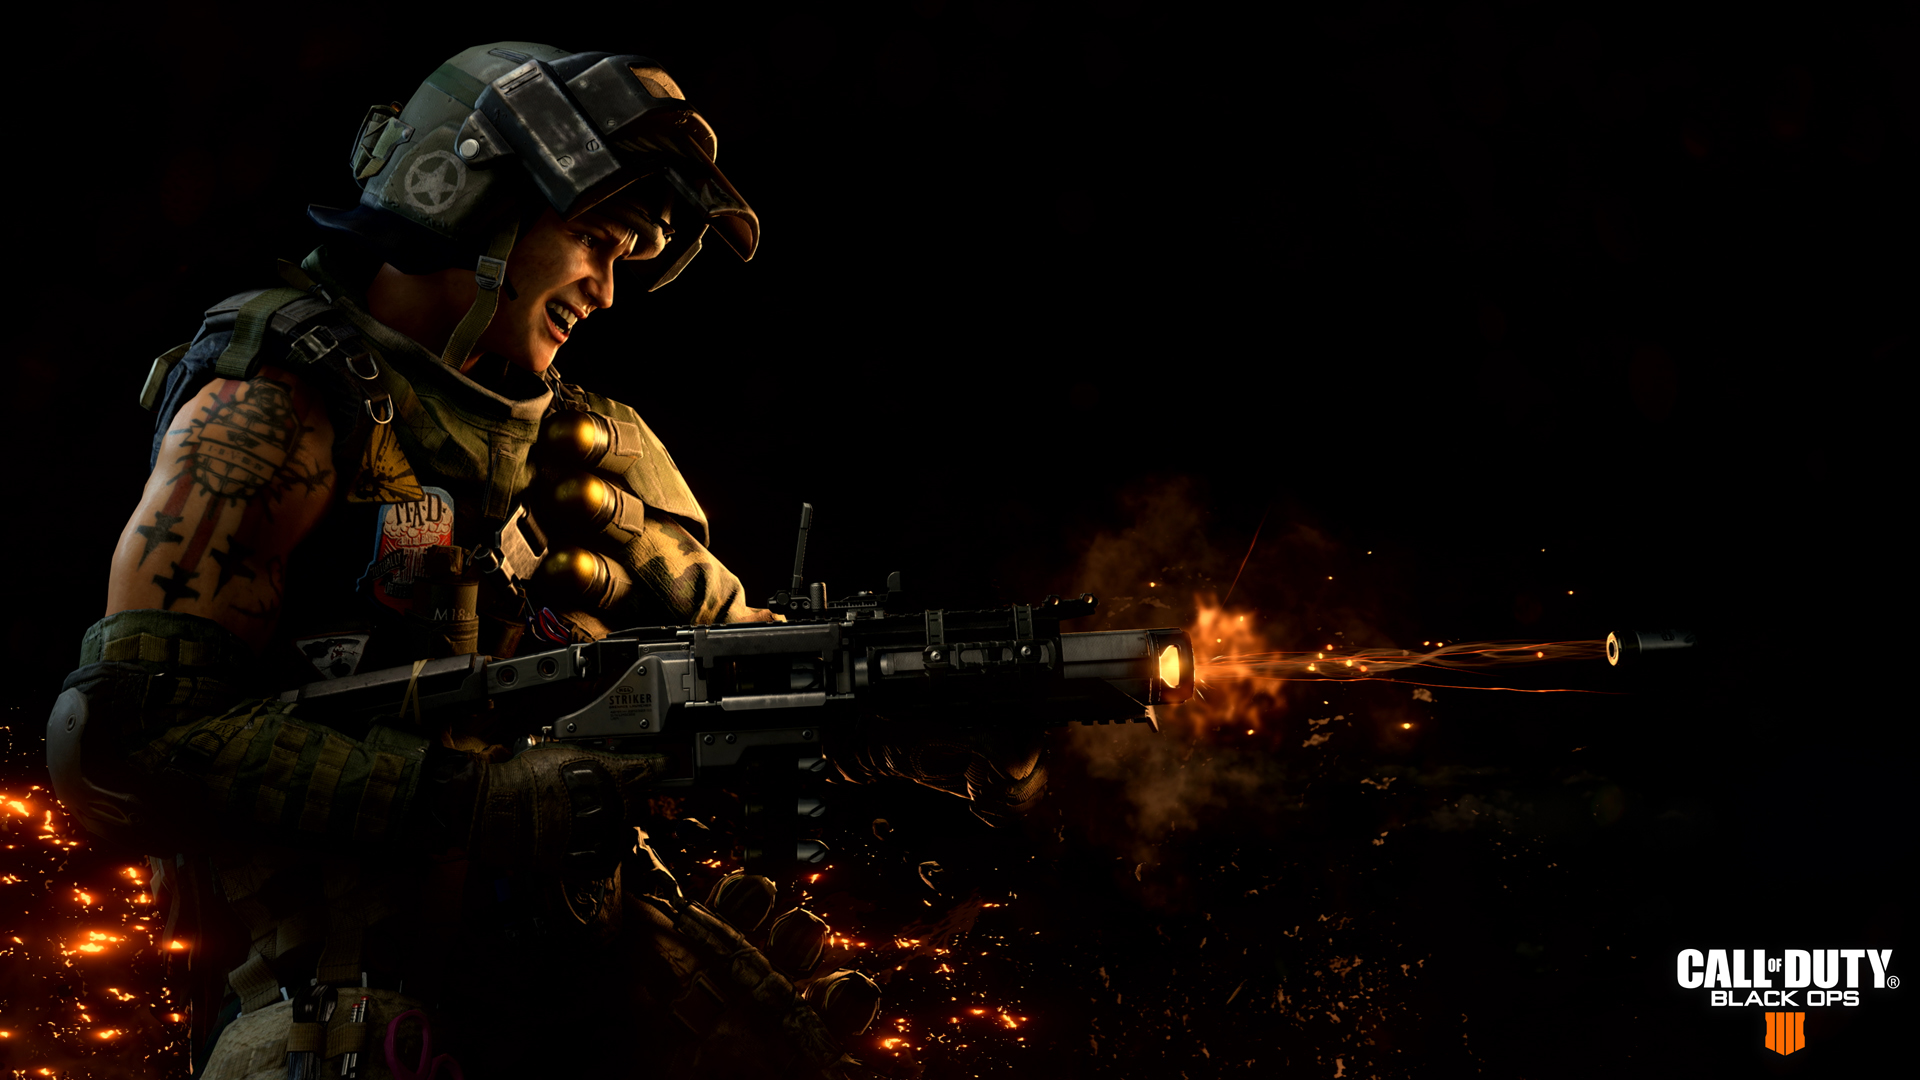 Call of Duty Black Ops 4 Screenshot #5. Bild: Activision